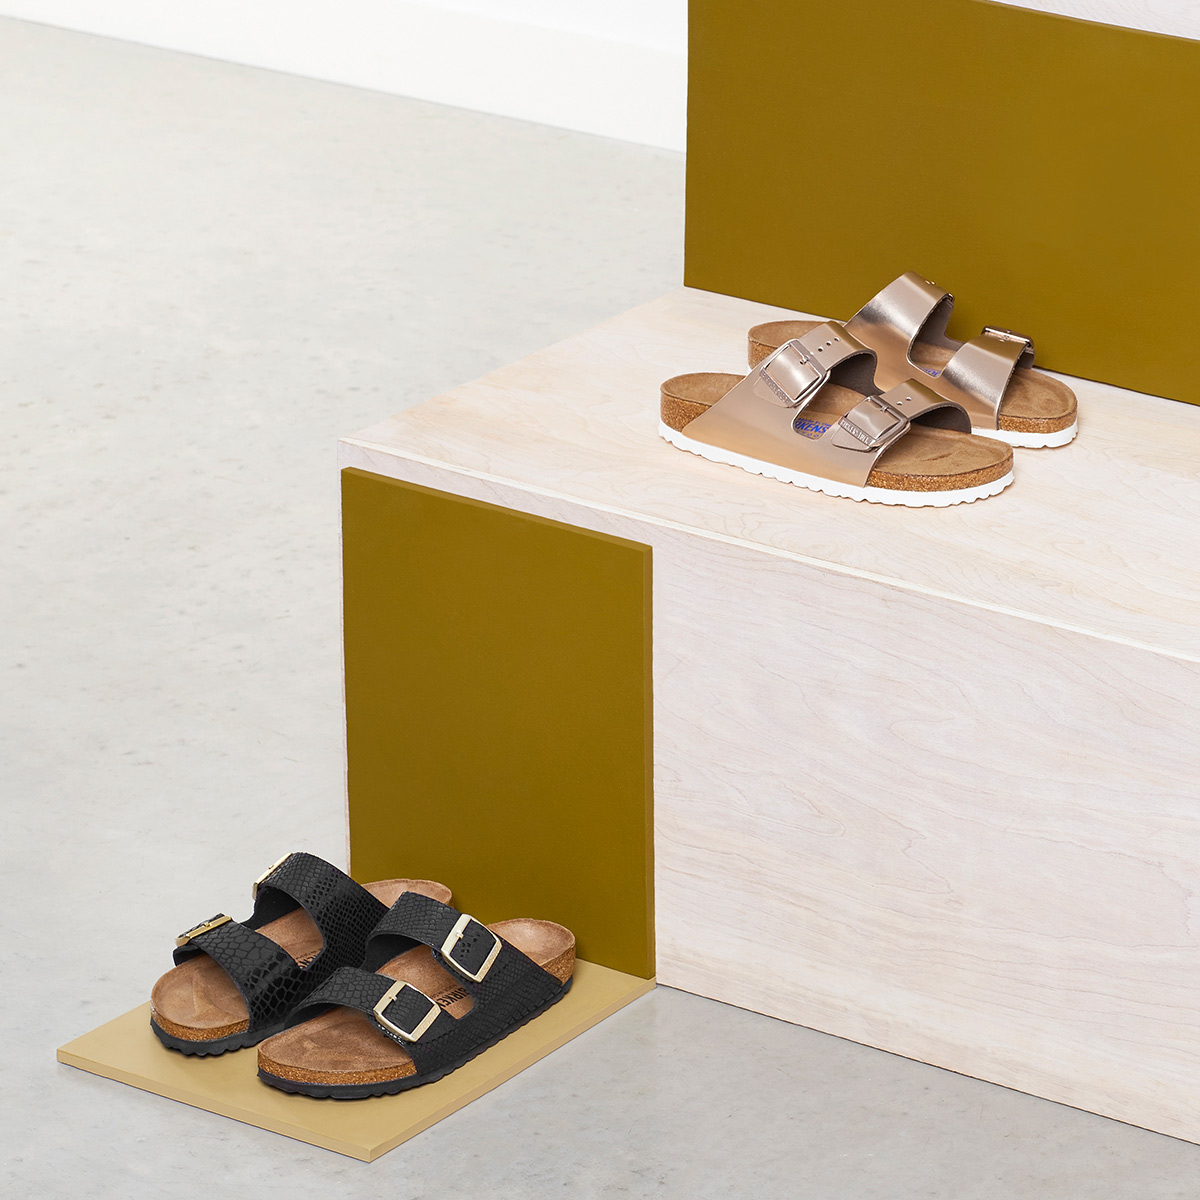 save off 62471 bfb14 Birkenstock Buyer's Guide: Everything You Need to Know - Allsole